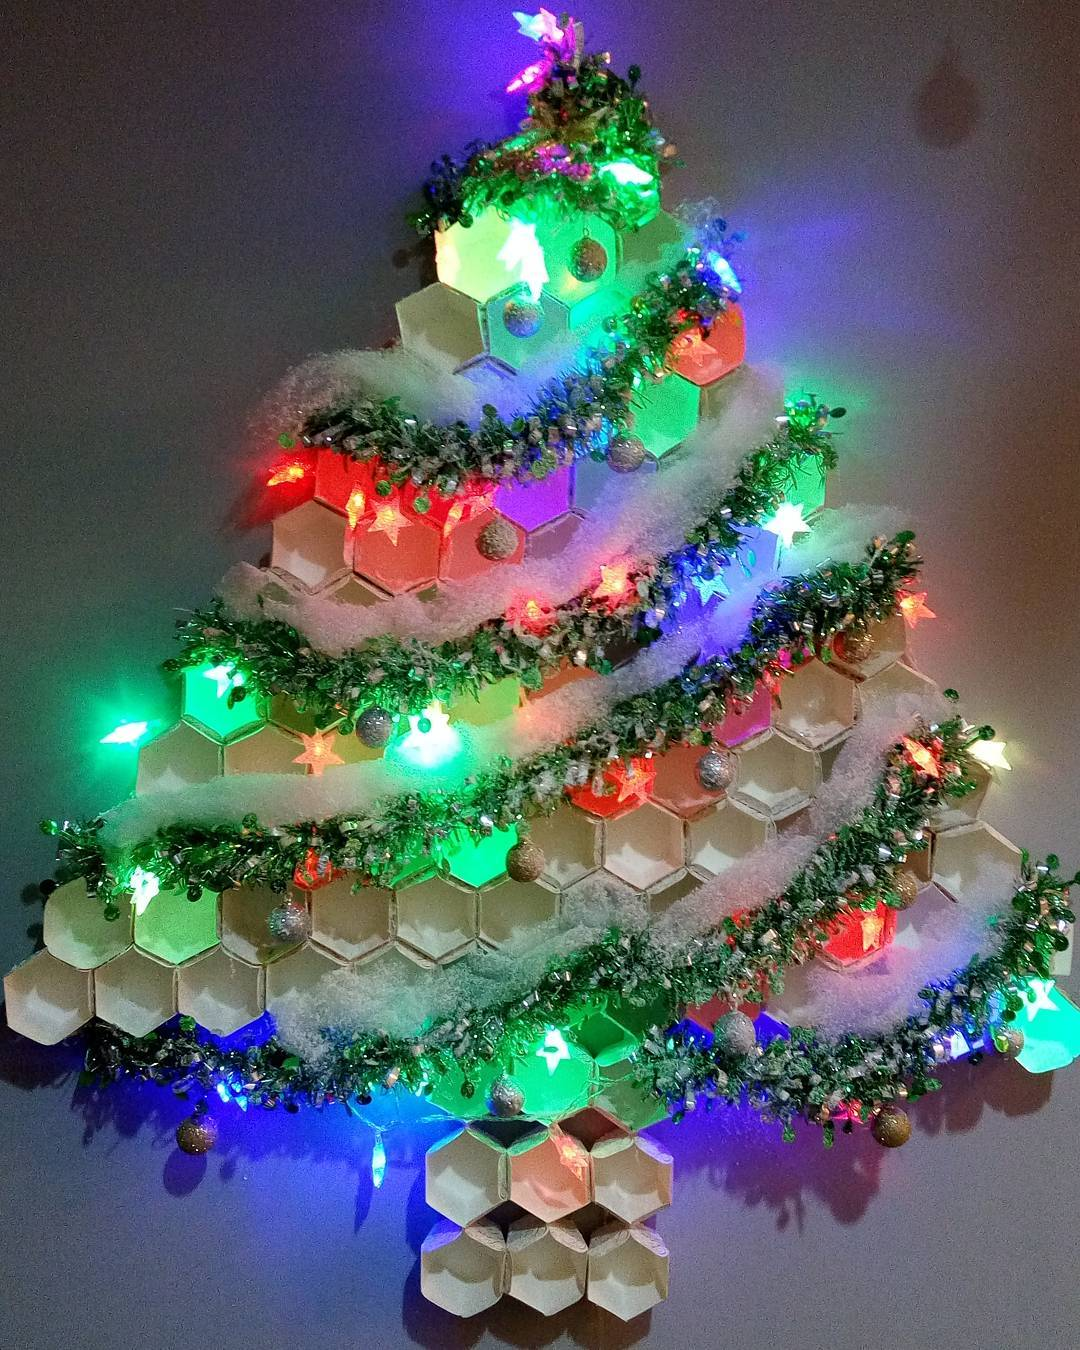 45 Charming Alternative Christmas Tree Ideas For Brighten Your Holidays